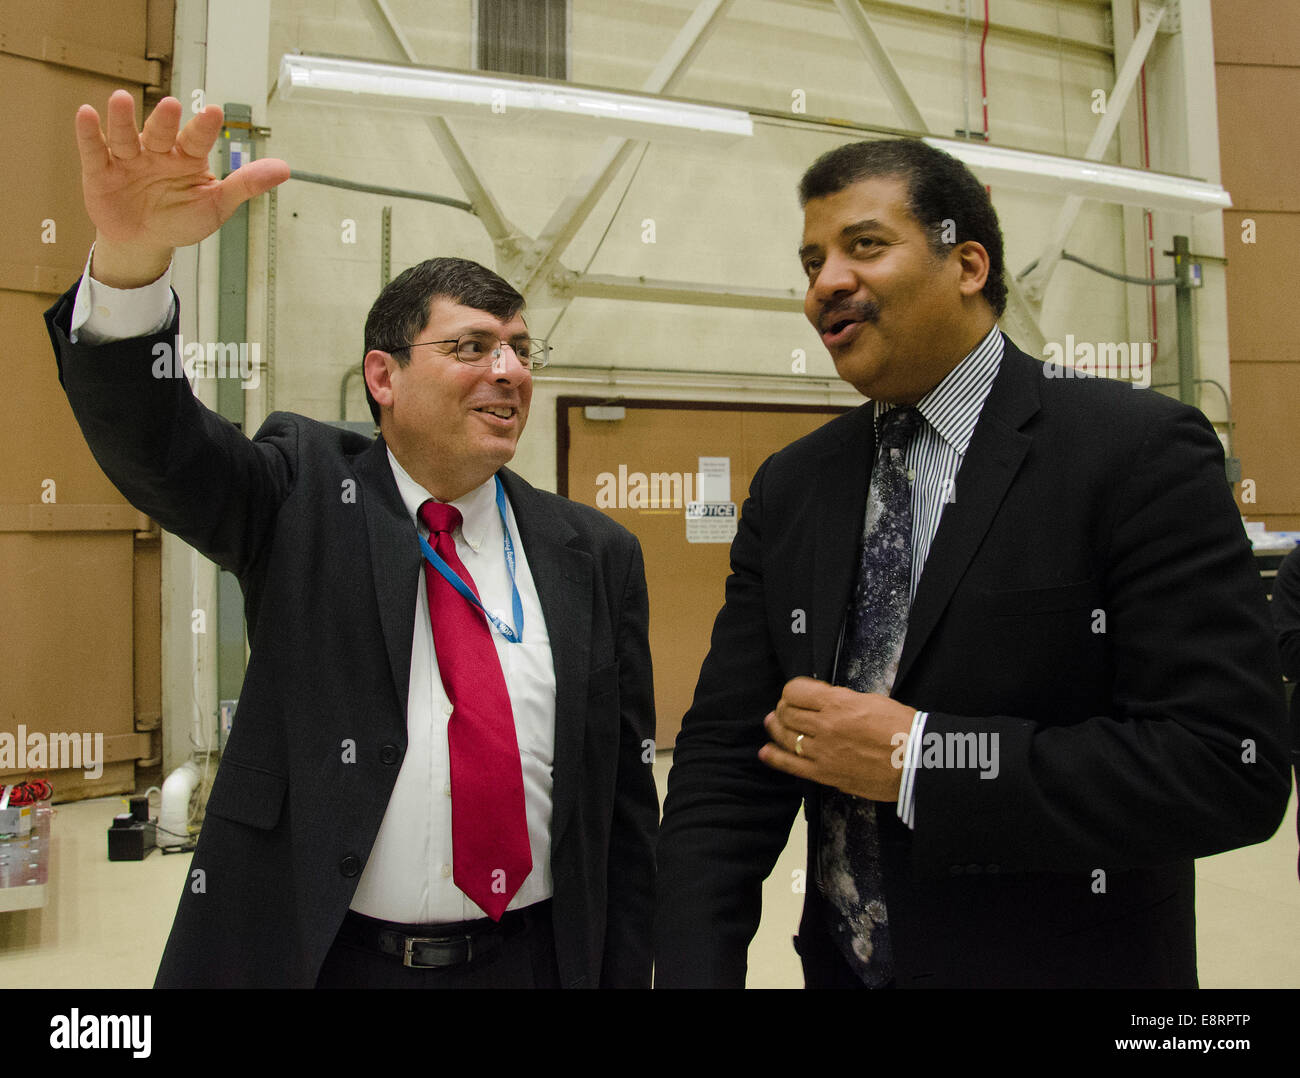 Dr. Neil deGrasse Tyson visited with Goddard's Space Flight Center Director Chris Scolese and the James Webb - Stock Image